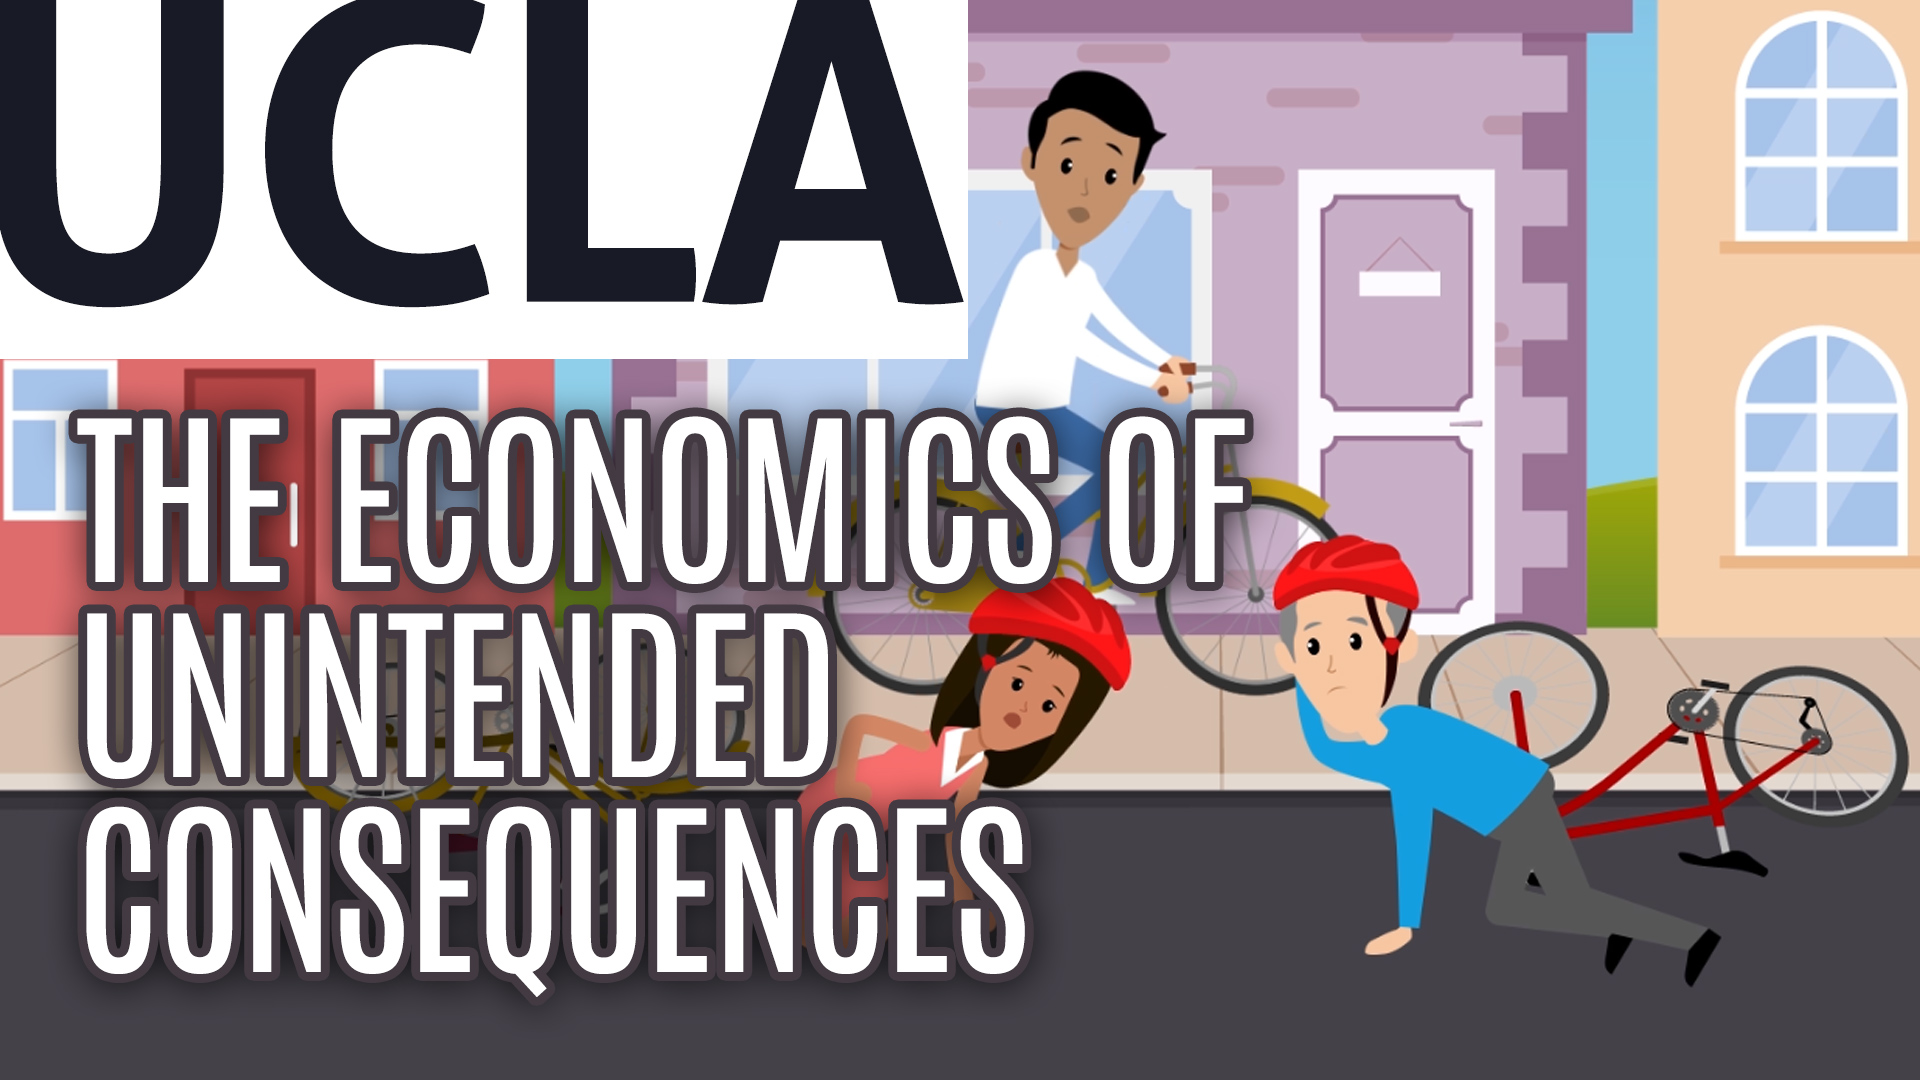 The Economics of Unintended Consequences